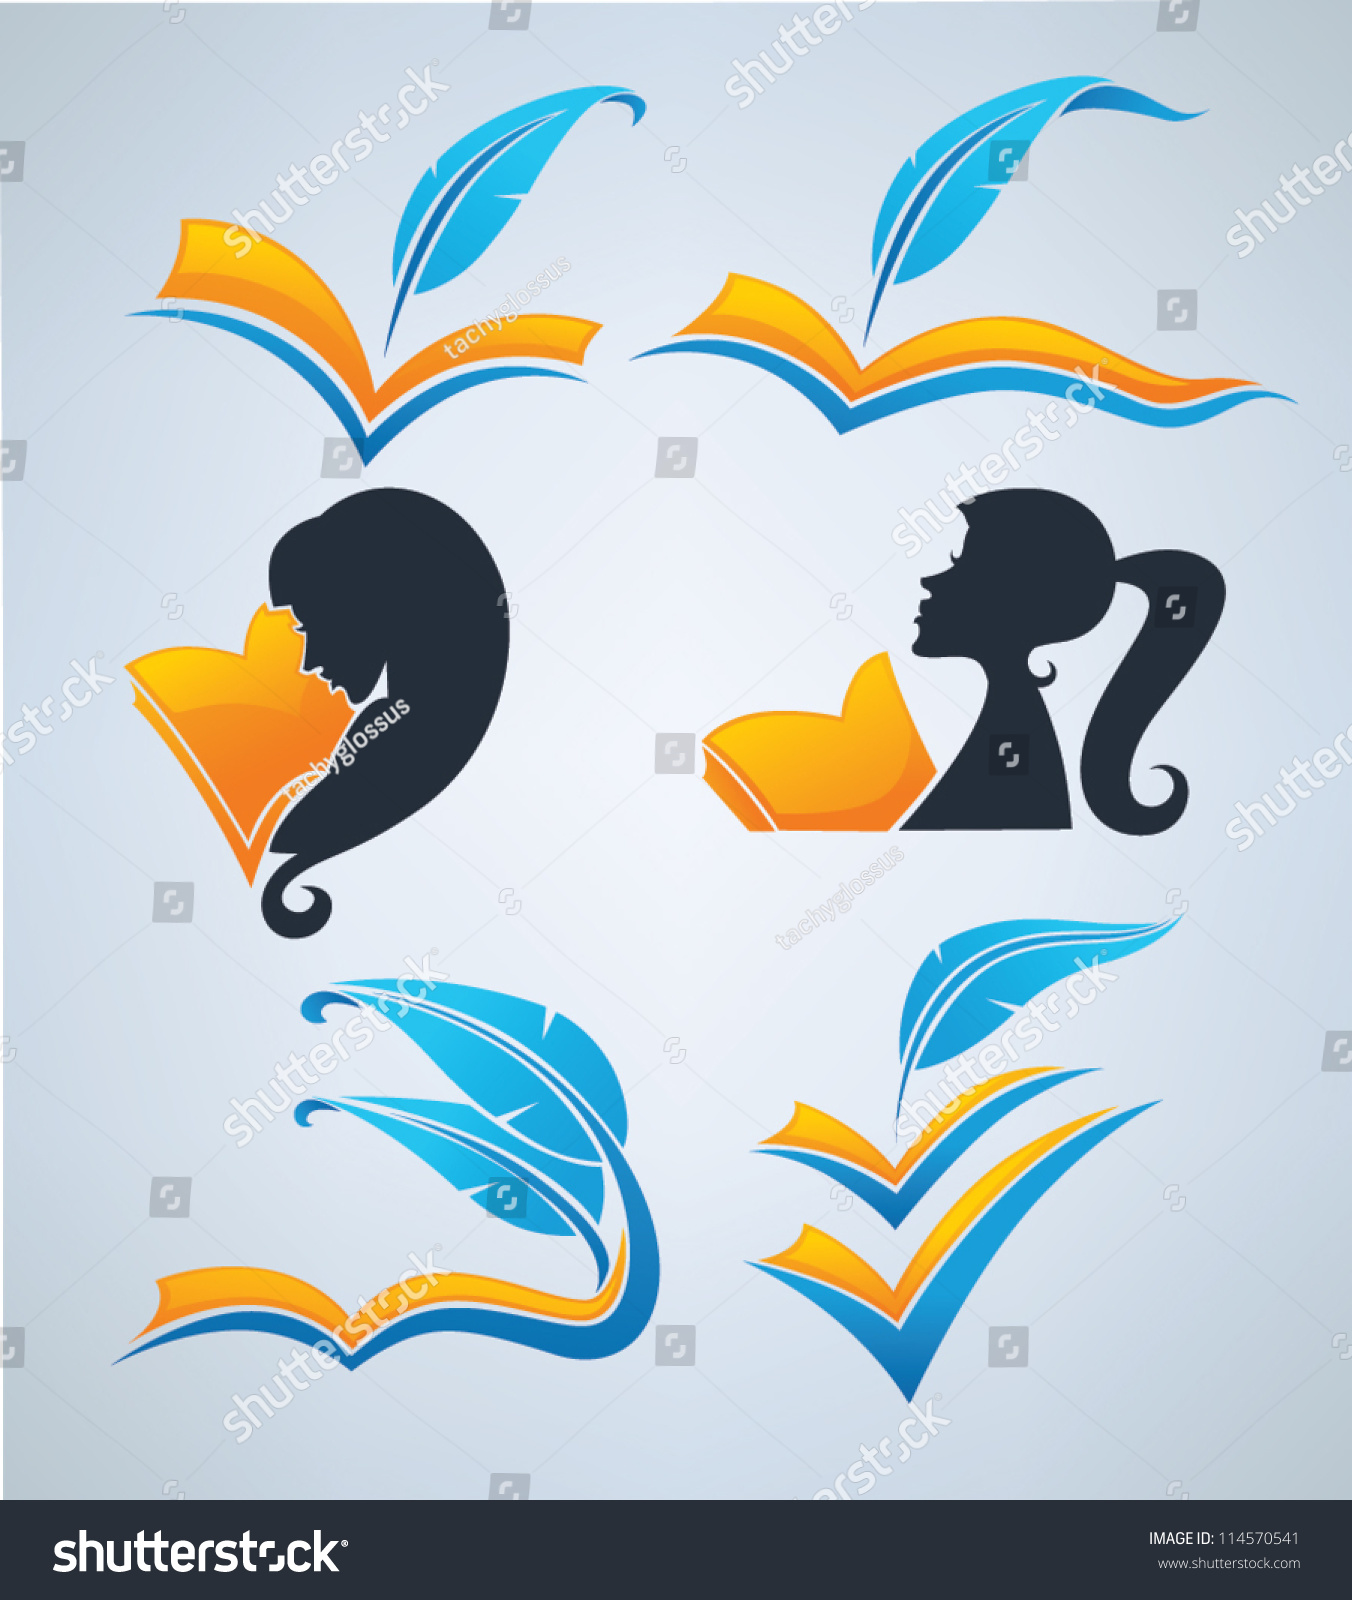 a symbol in literature globe books apple blank global geography  a symbol in literature literature reading writing poetry vector collection stock vector